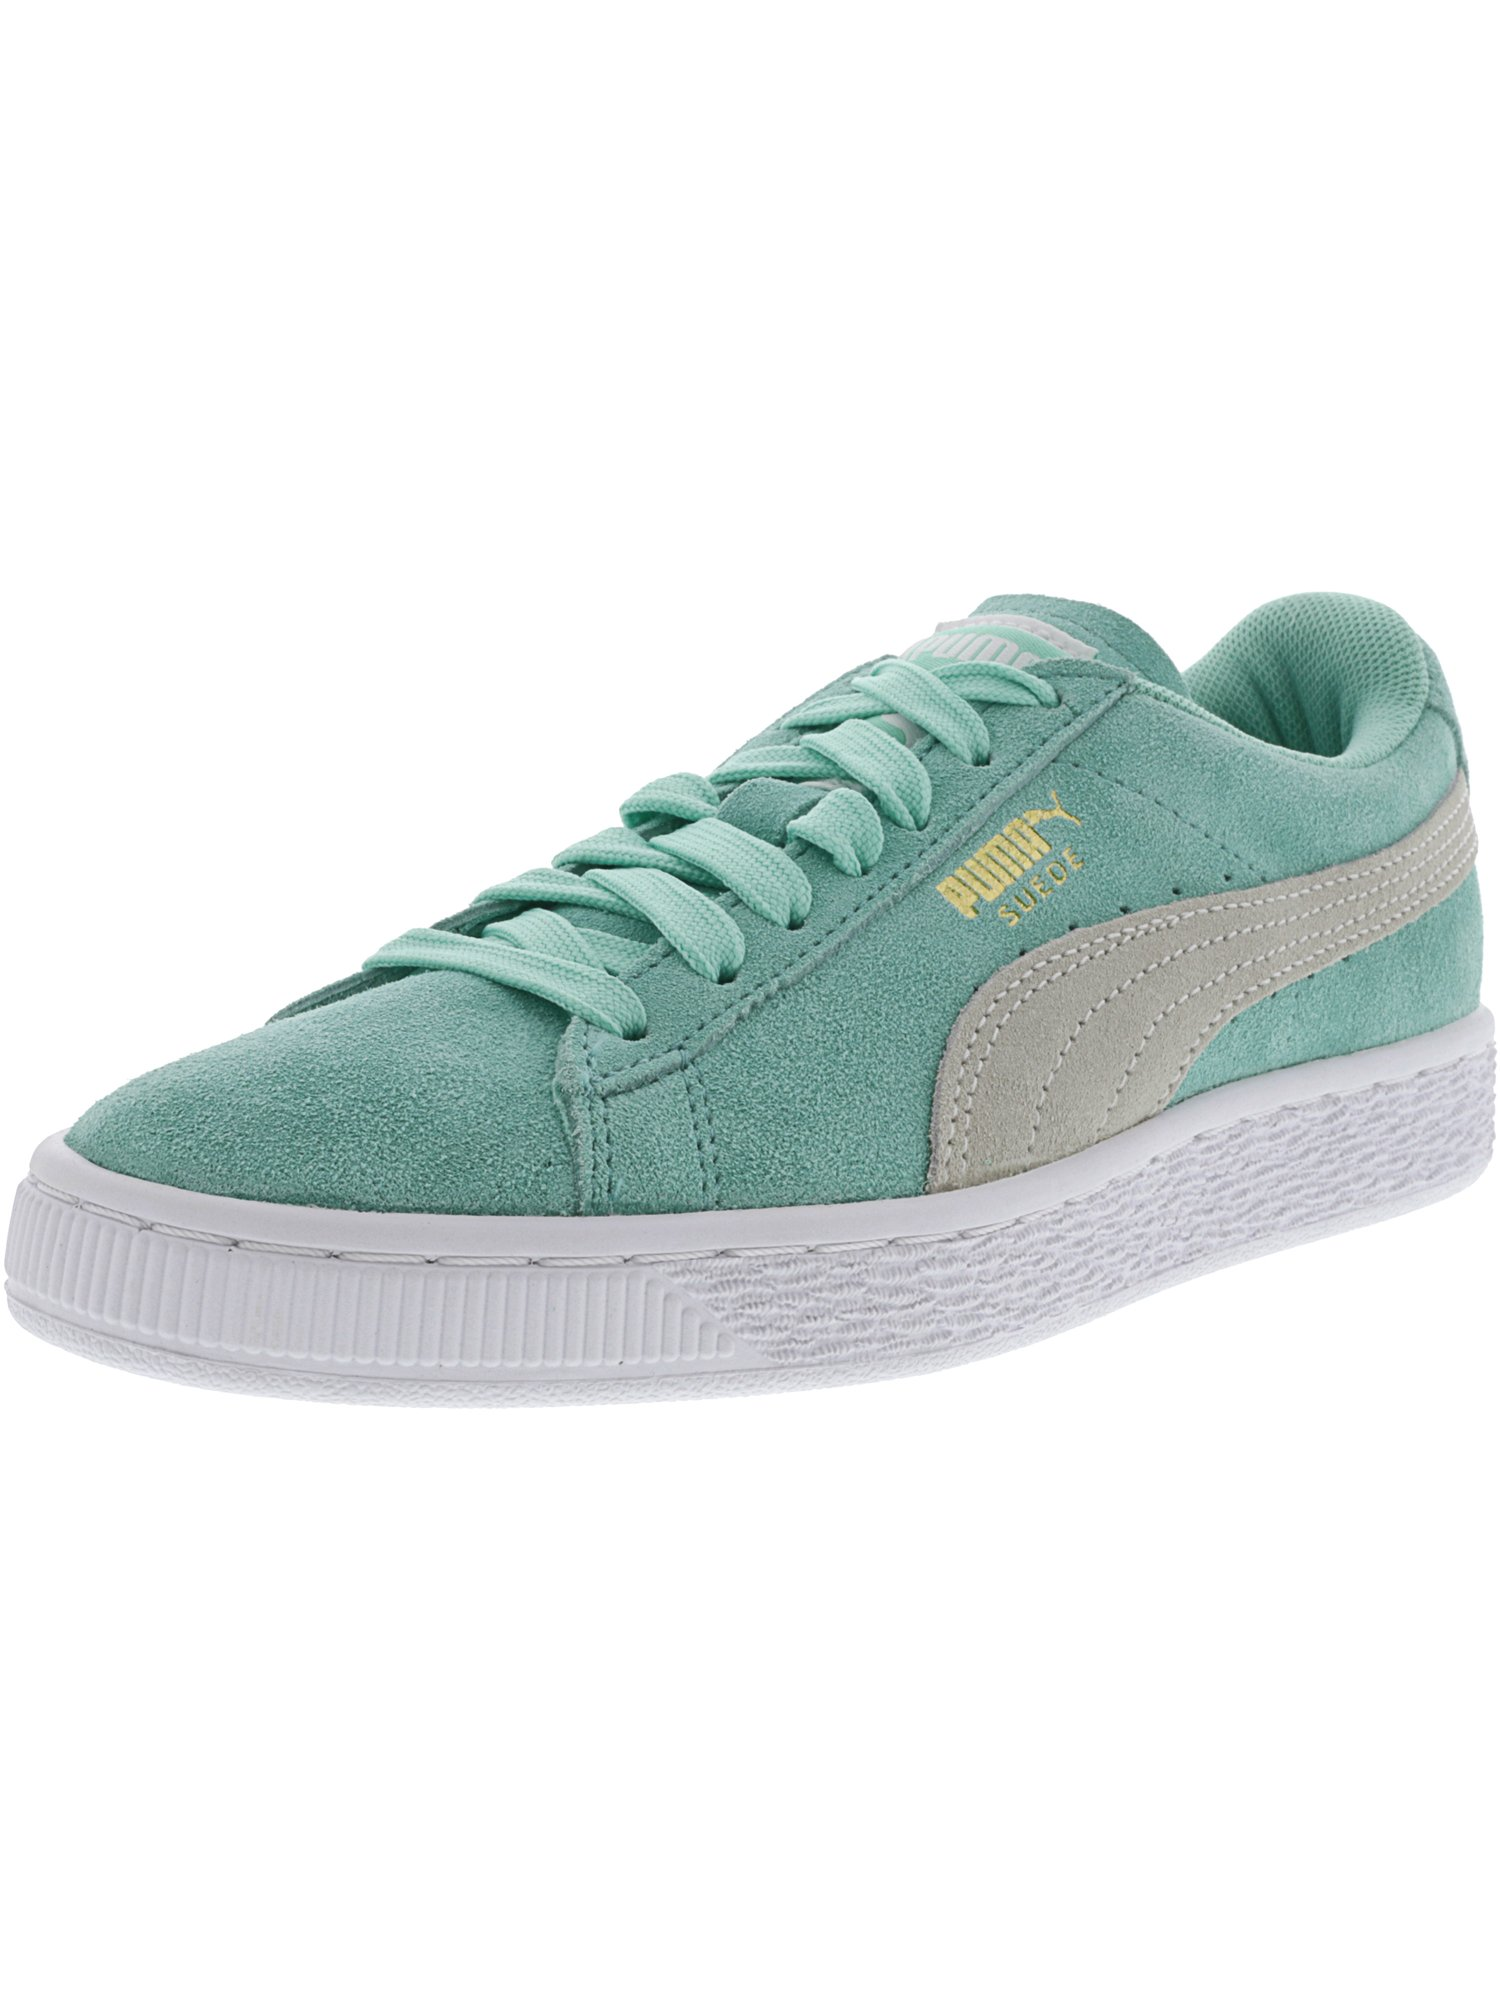 Puma Suede Classics Break Dancing Style Sneaker for Women - 6M - Holiday / White